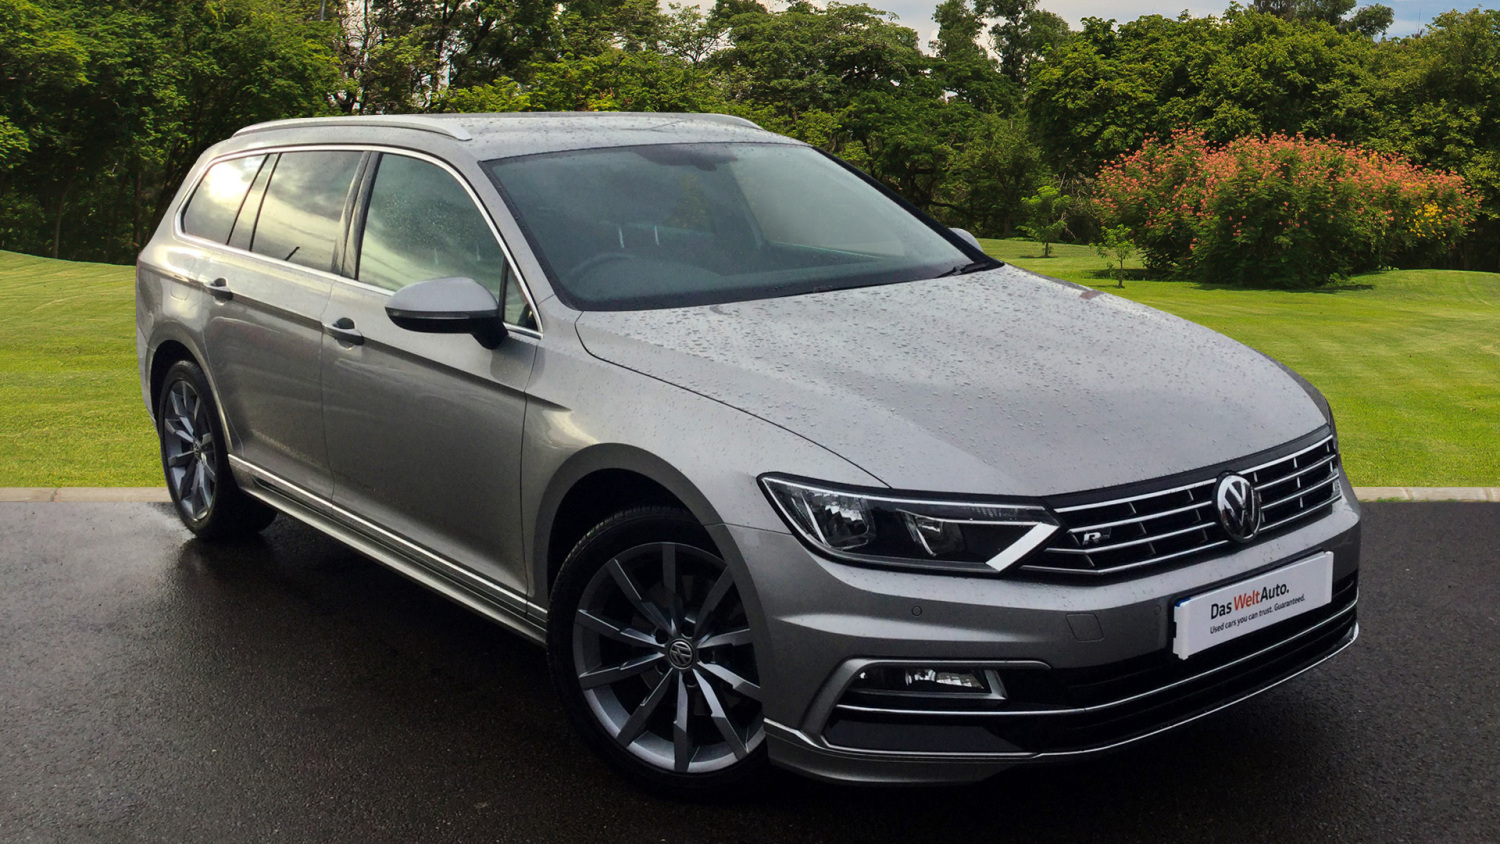 used volkswagen passat 2 0 tdi r line 5dr diesel estate for sale in scotland macklin motors. Black Bedroom Furniture Sets. Home Design Ideas